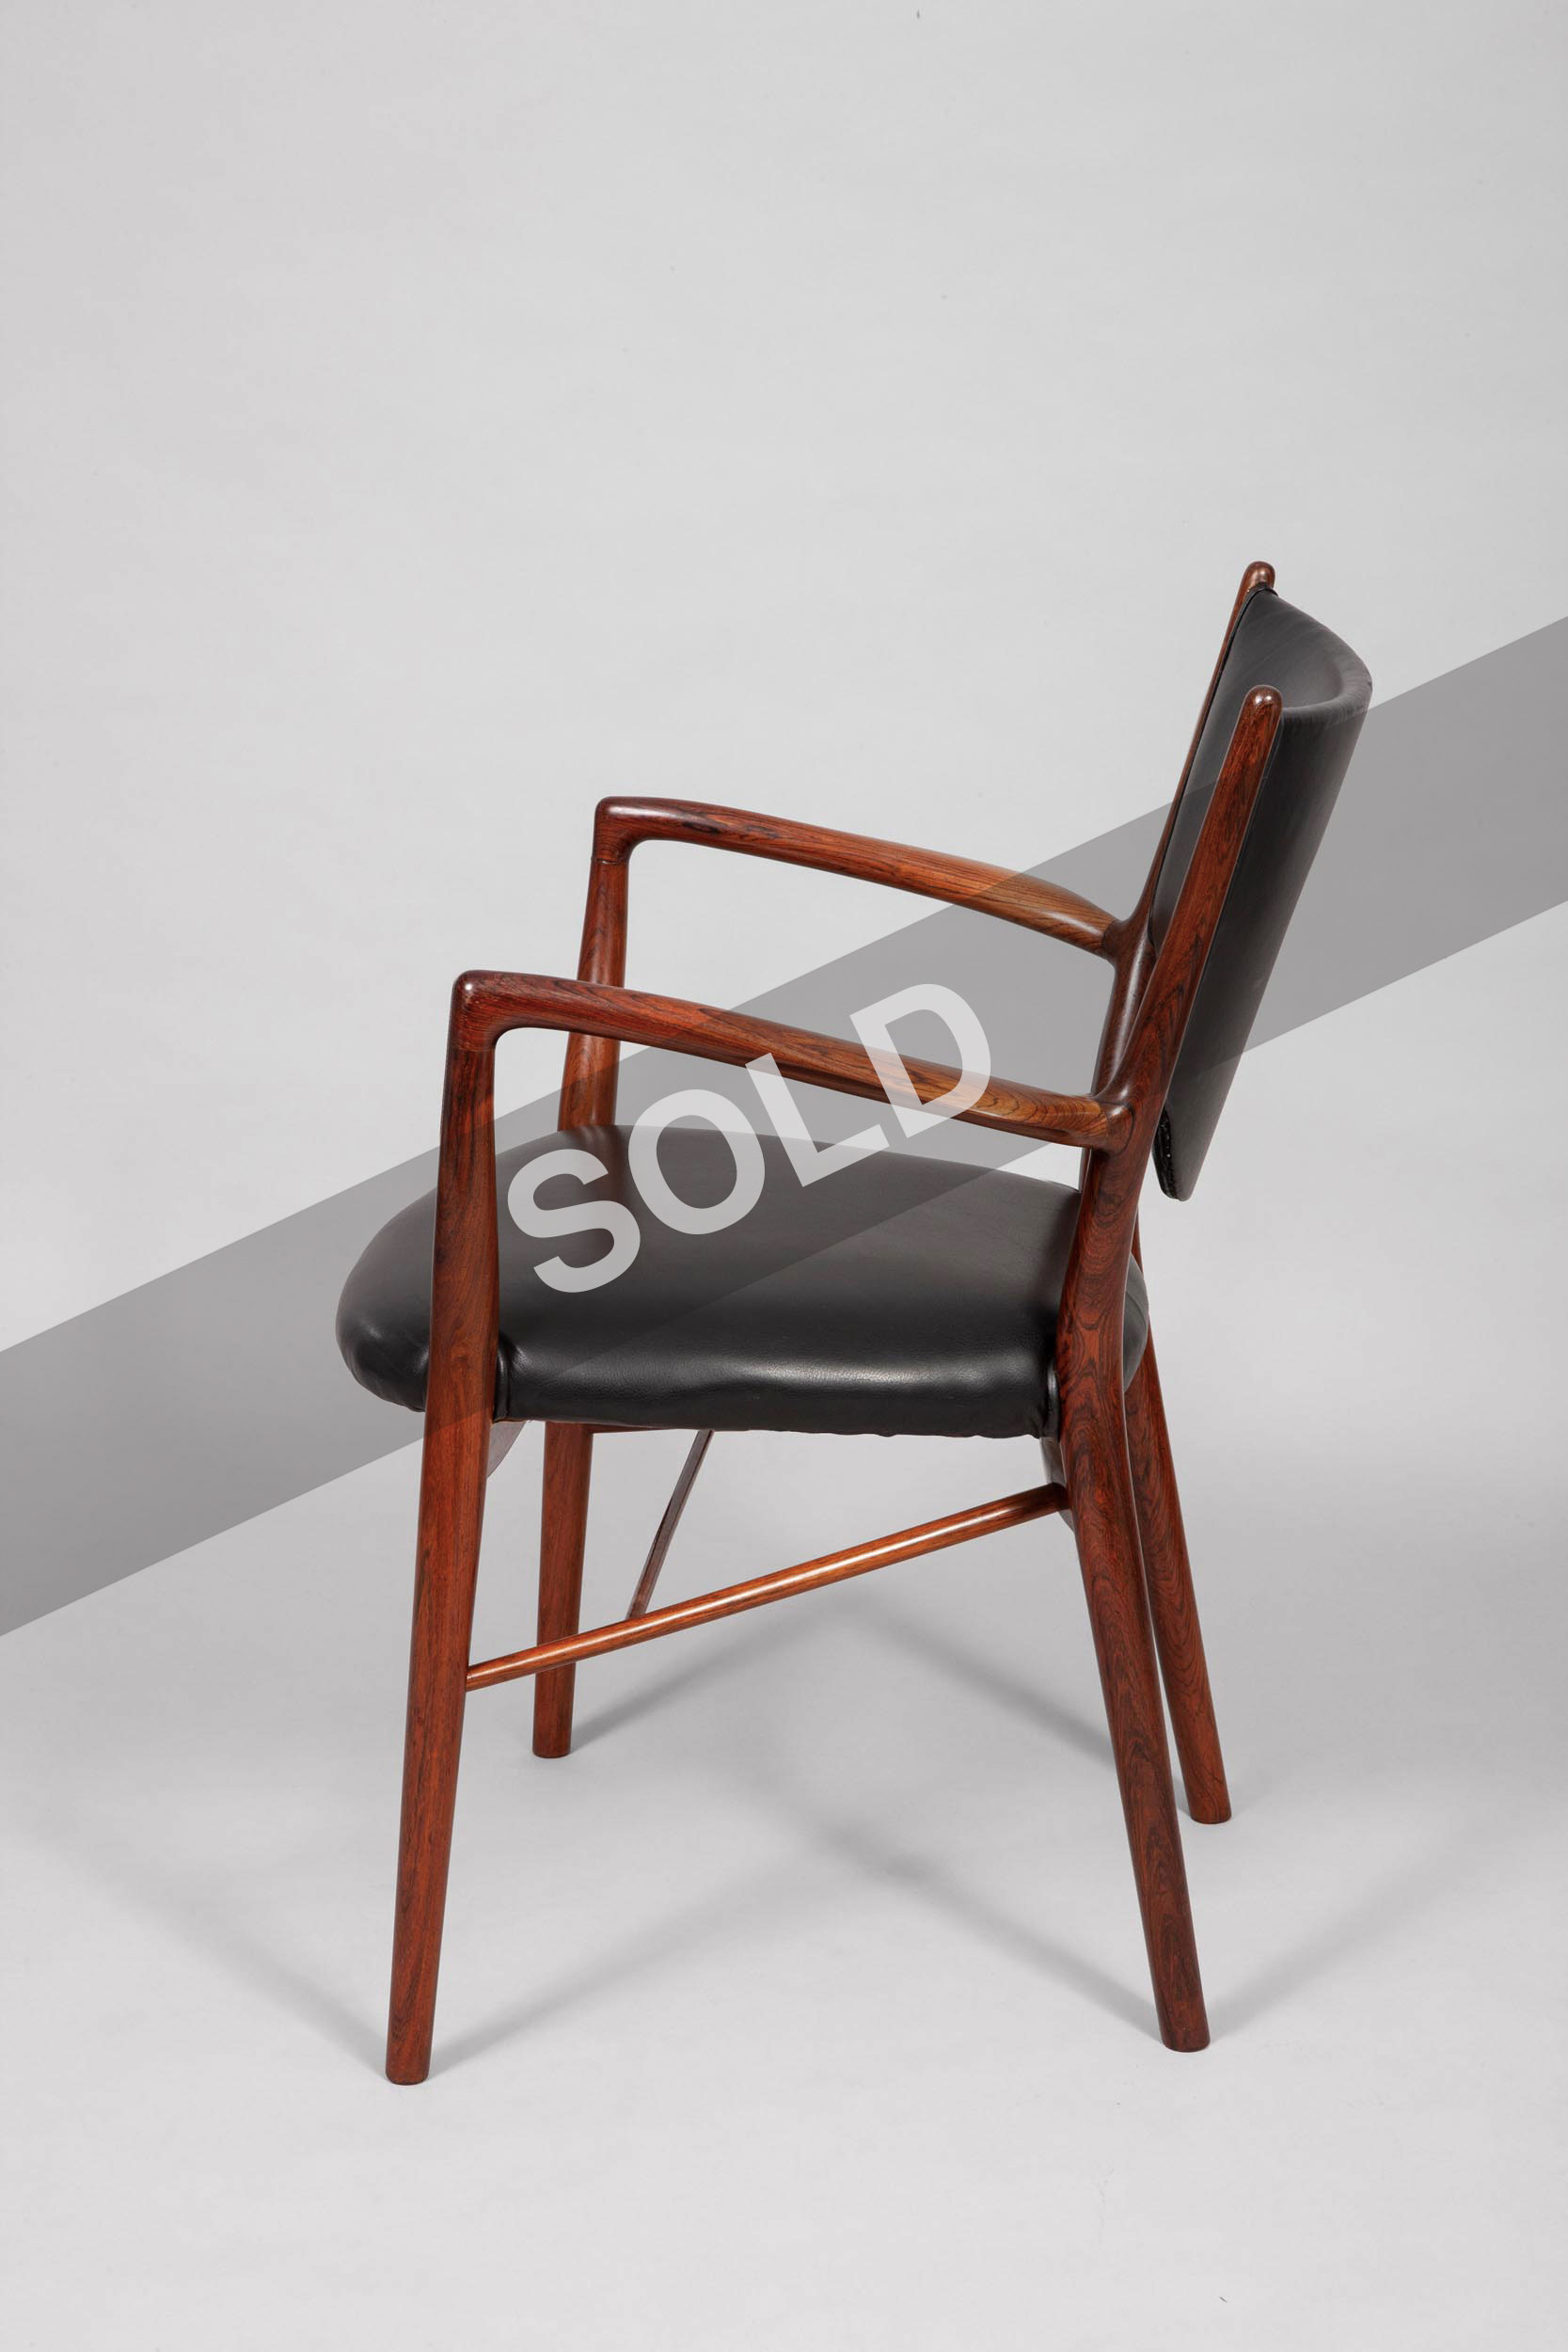 Finn Juhl chair in leather and rosewood, Danish, 1946